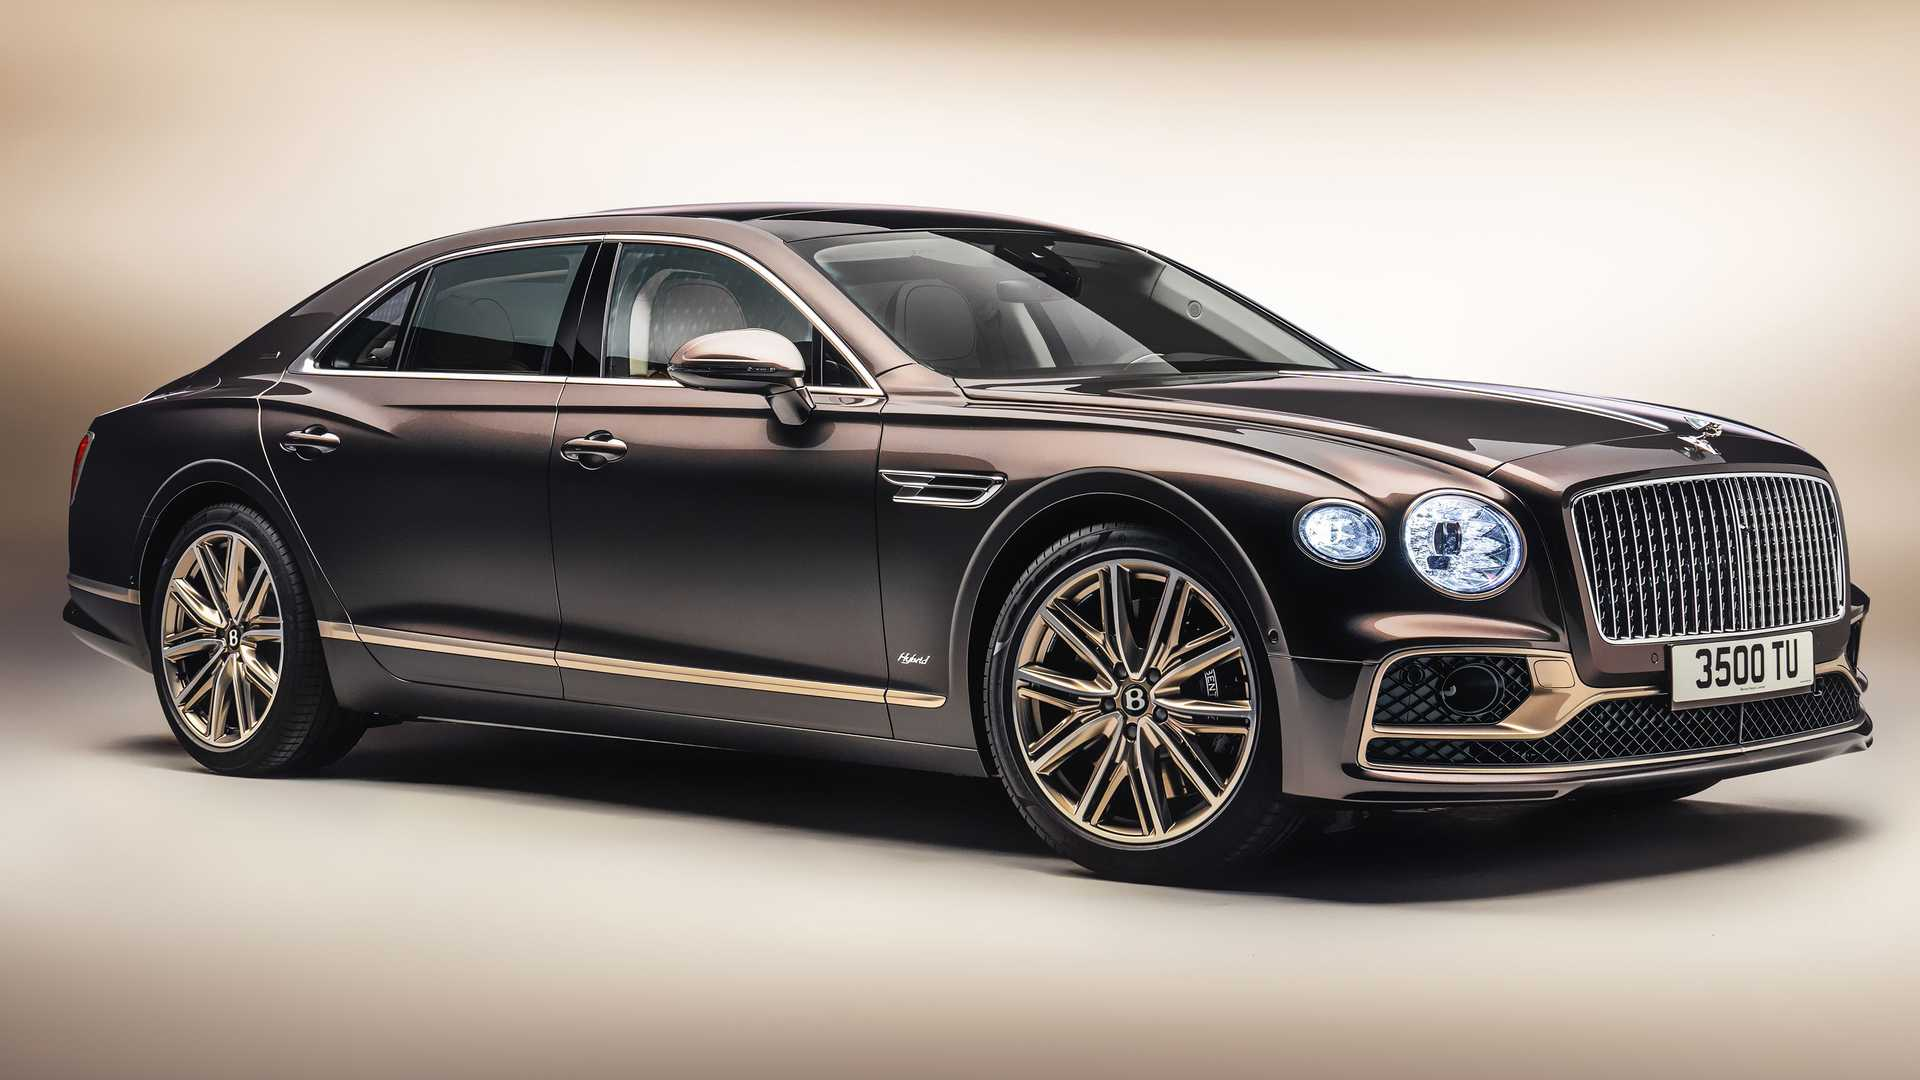 To celebrate the launch of its second part-electric production car – the Flying Spur Hybrid – Bentley will be releasing a limited series of cars dubbed the Odyssean Edition. Pricing and availability remain undisclosed.